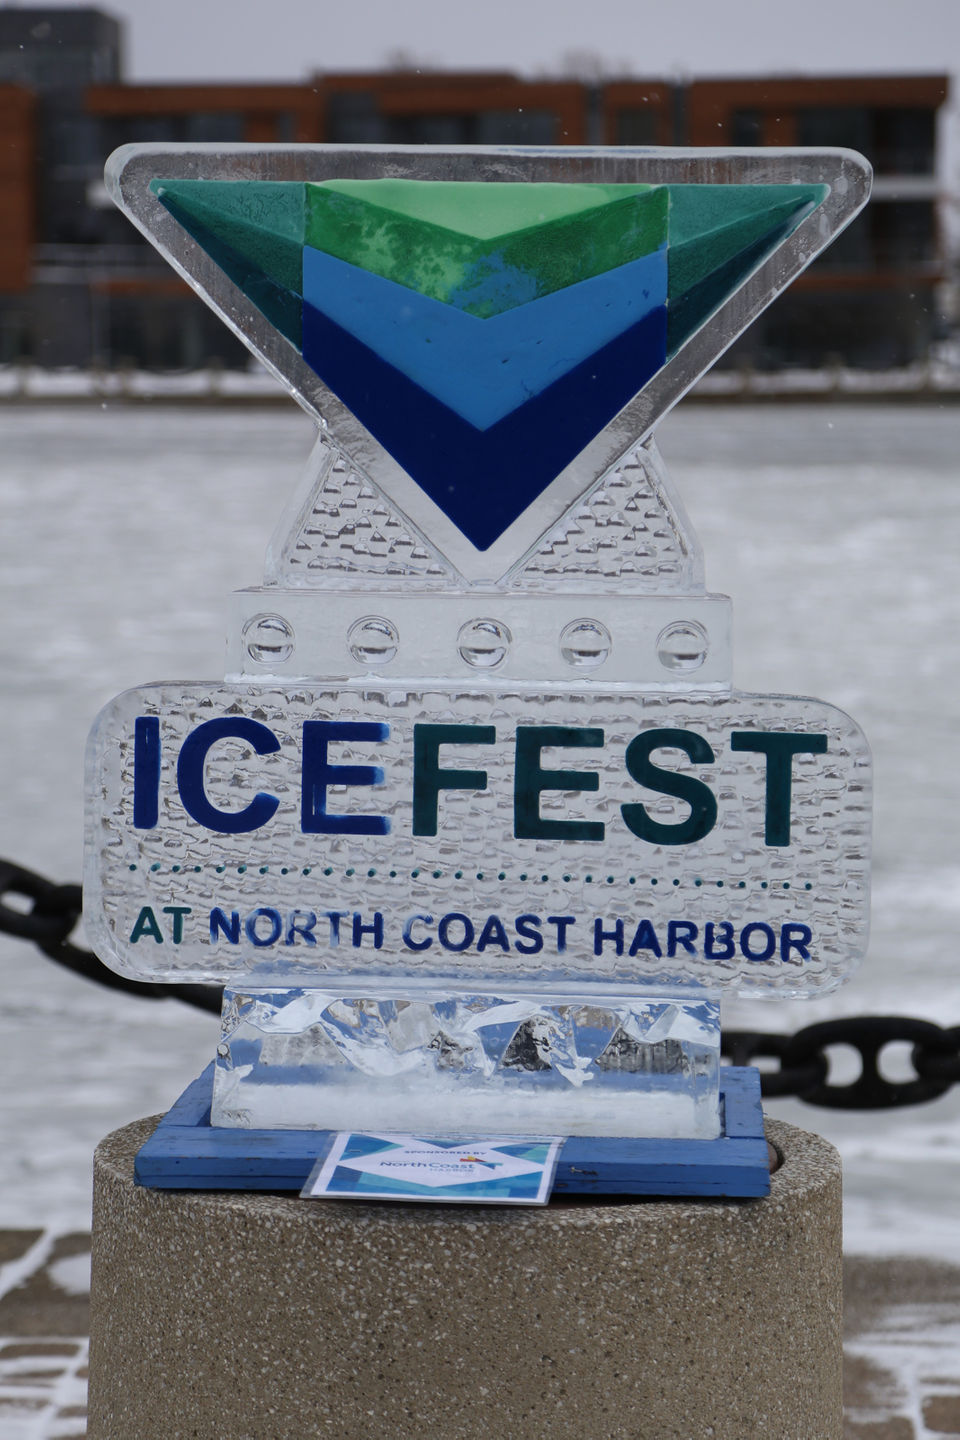 Dozens of ice sculptures on display at the North Coast Harbor Ice Fest